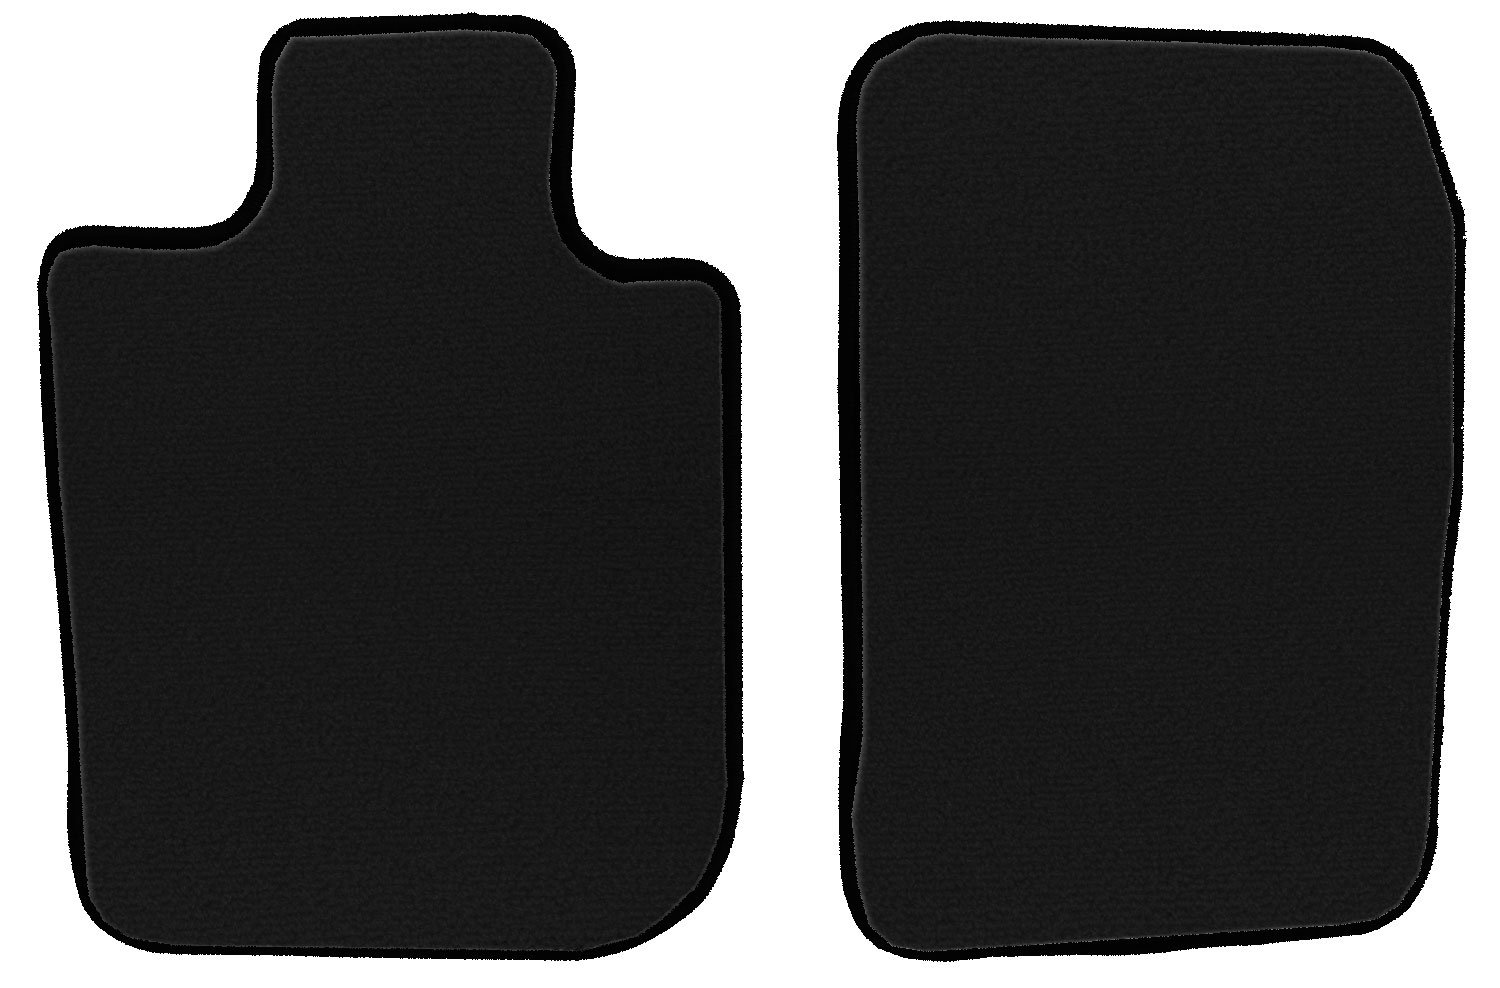 2010 Kia Optima Black Loop Driver /& Passenger Floor 2009 GGBAILEY D2452A-F1A-BK-LP Custom Fit Car Mats for 2006 2007 2008